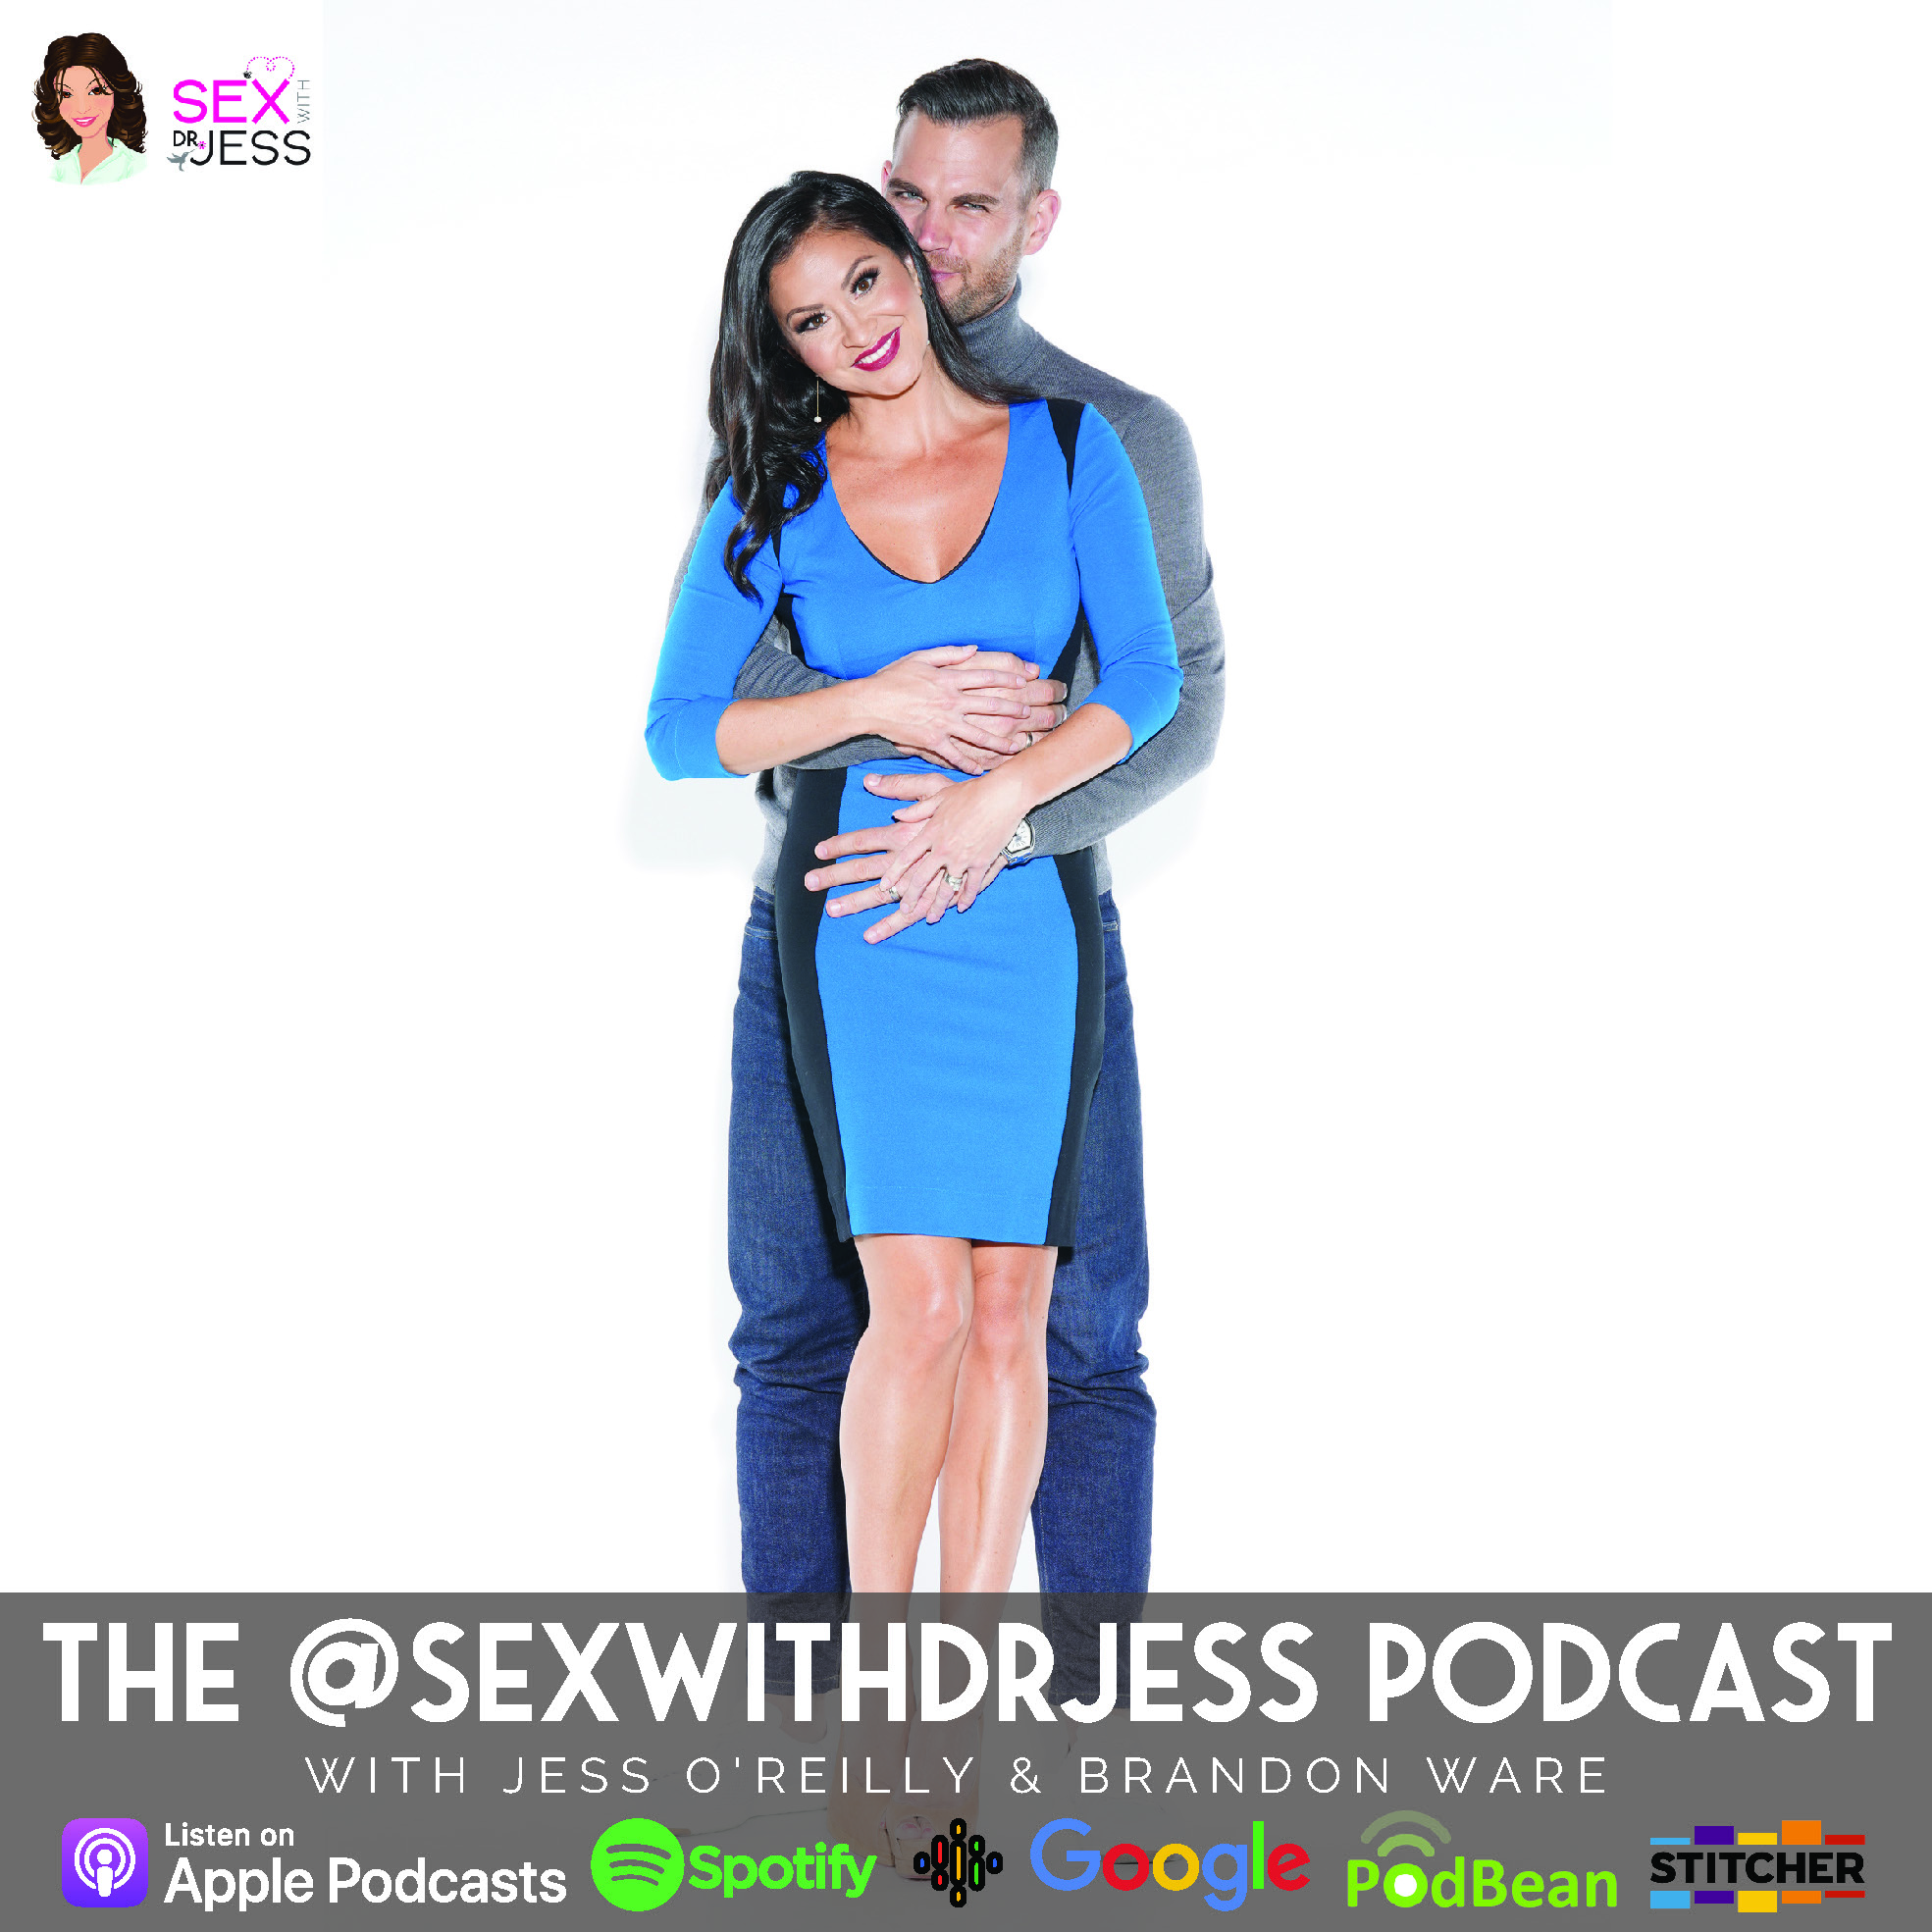 The @SexWithDrJess Podcast 2